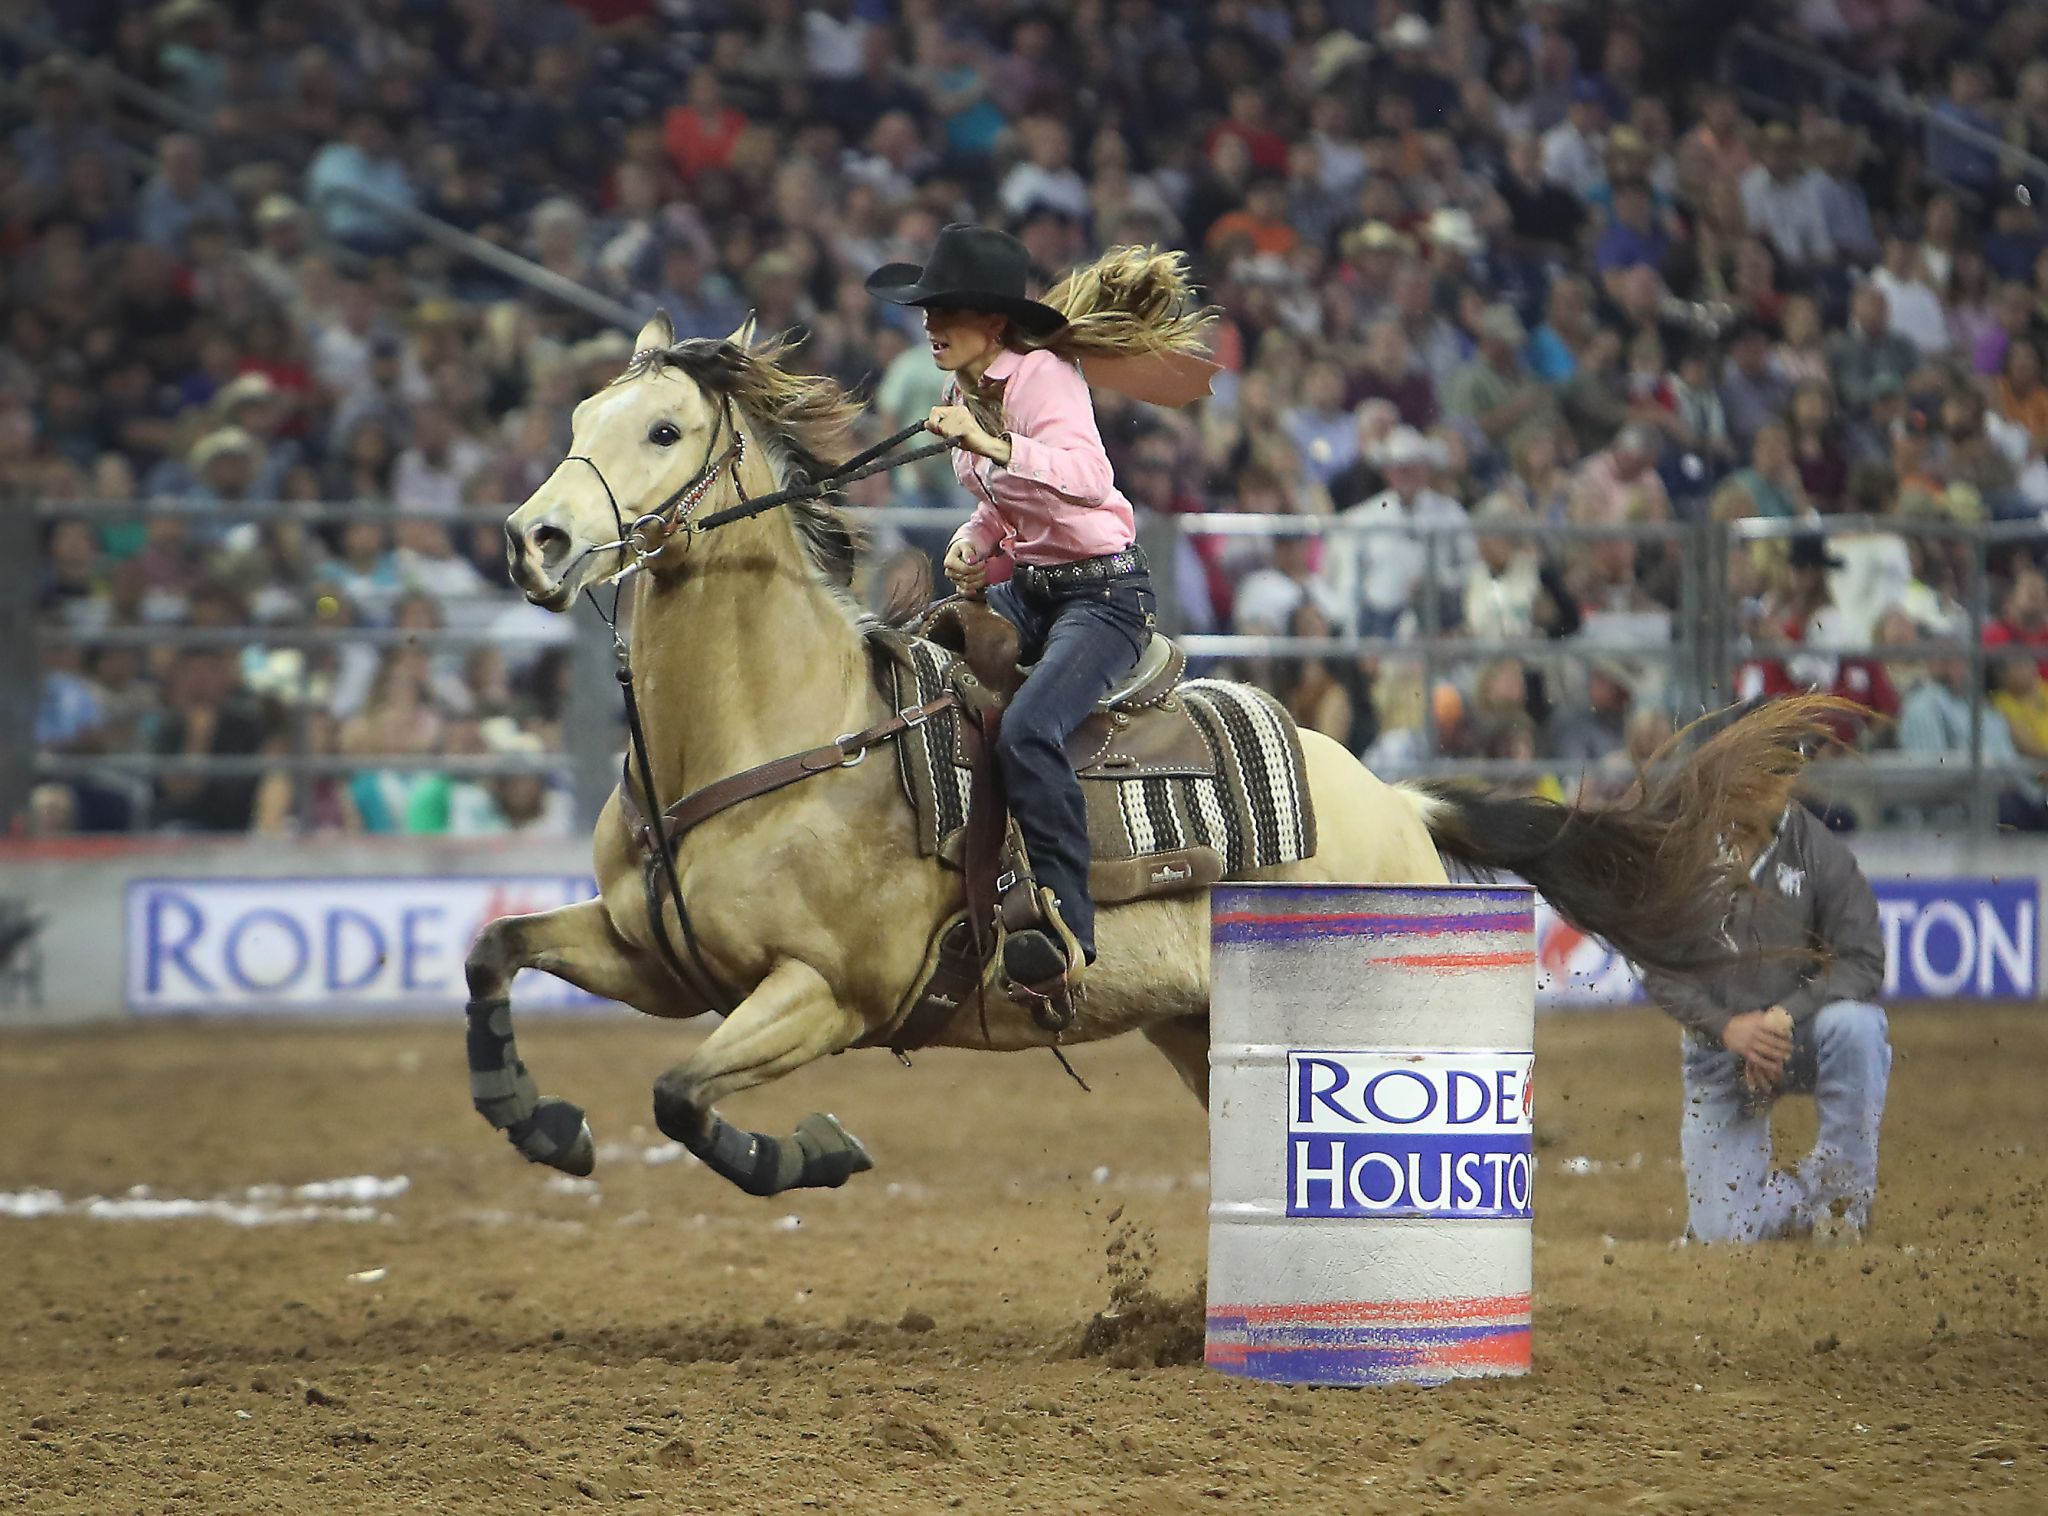 Kassie Mowry dominates barrel racing at RodeoHouston ...